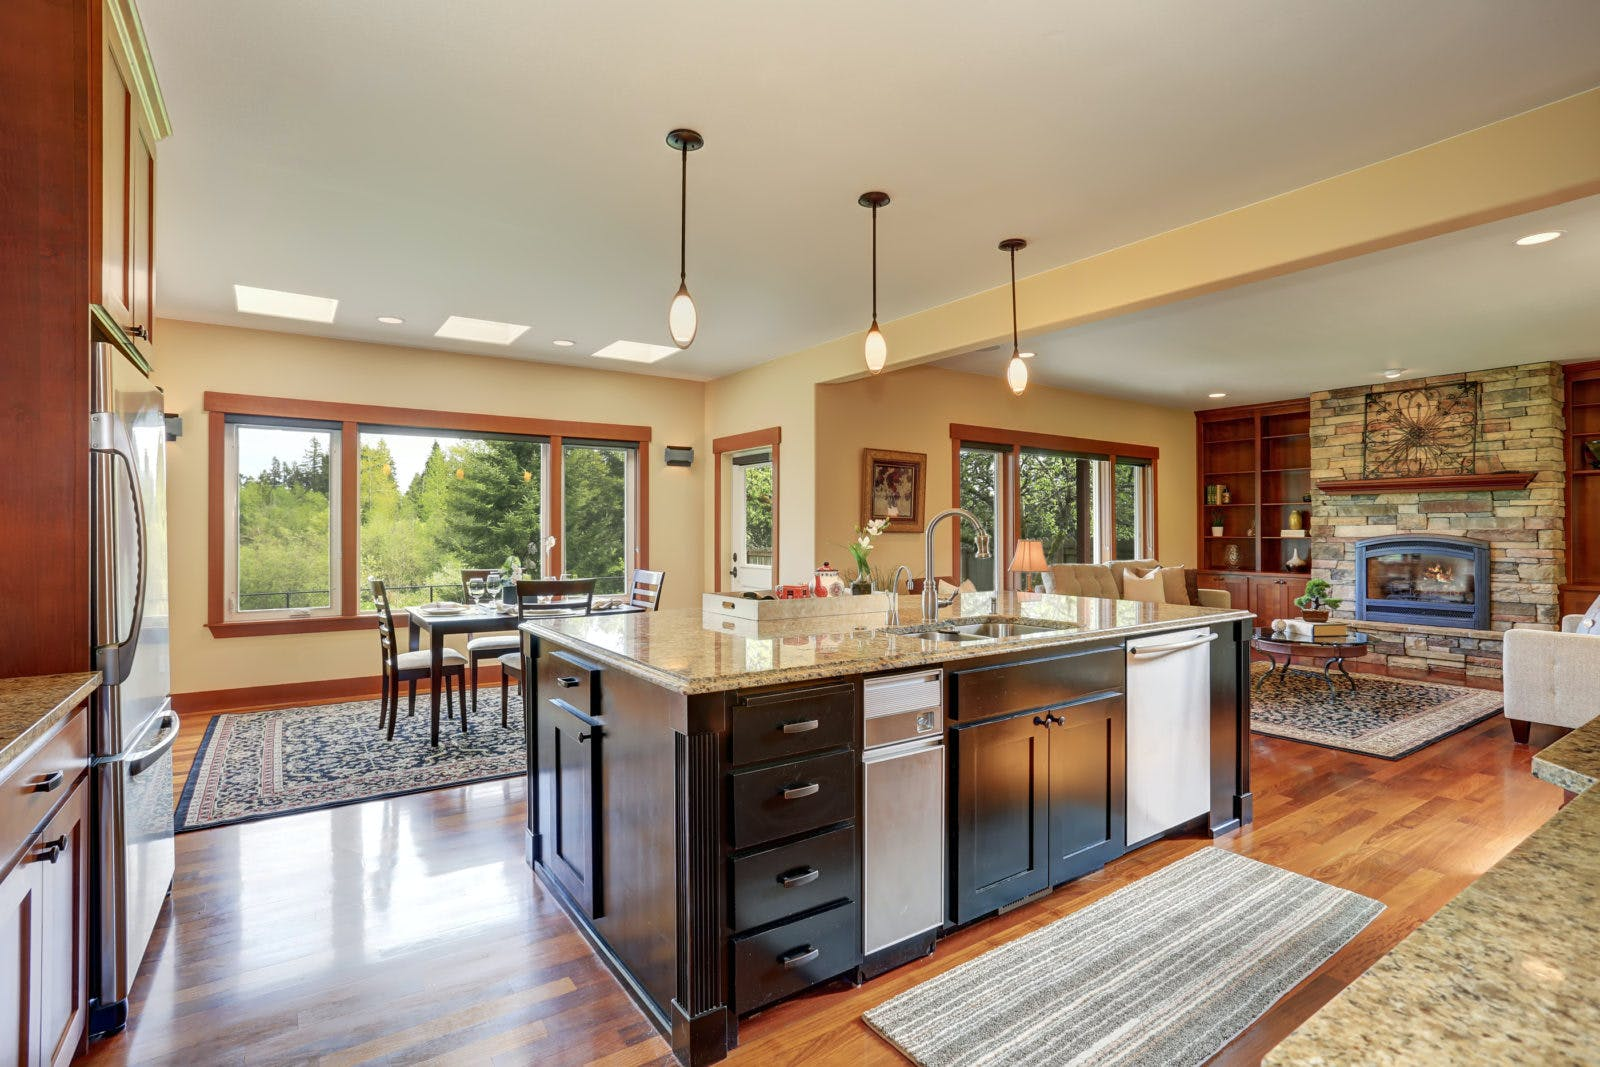 Hodges Real Estate Services | When you work with Hodges, it